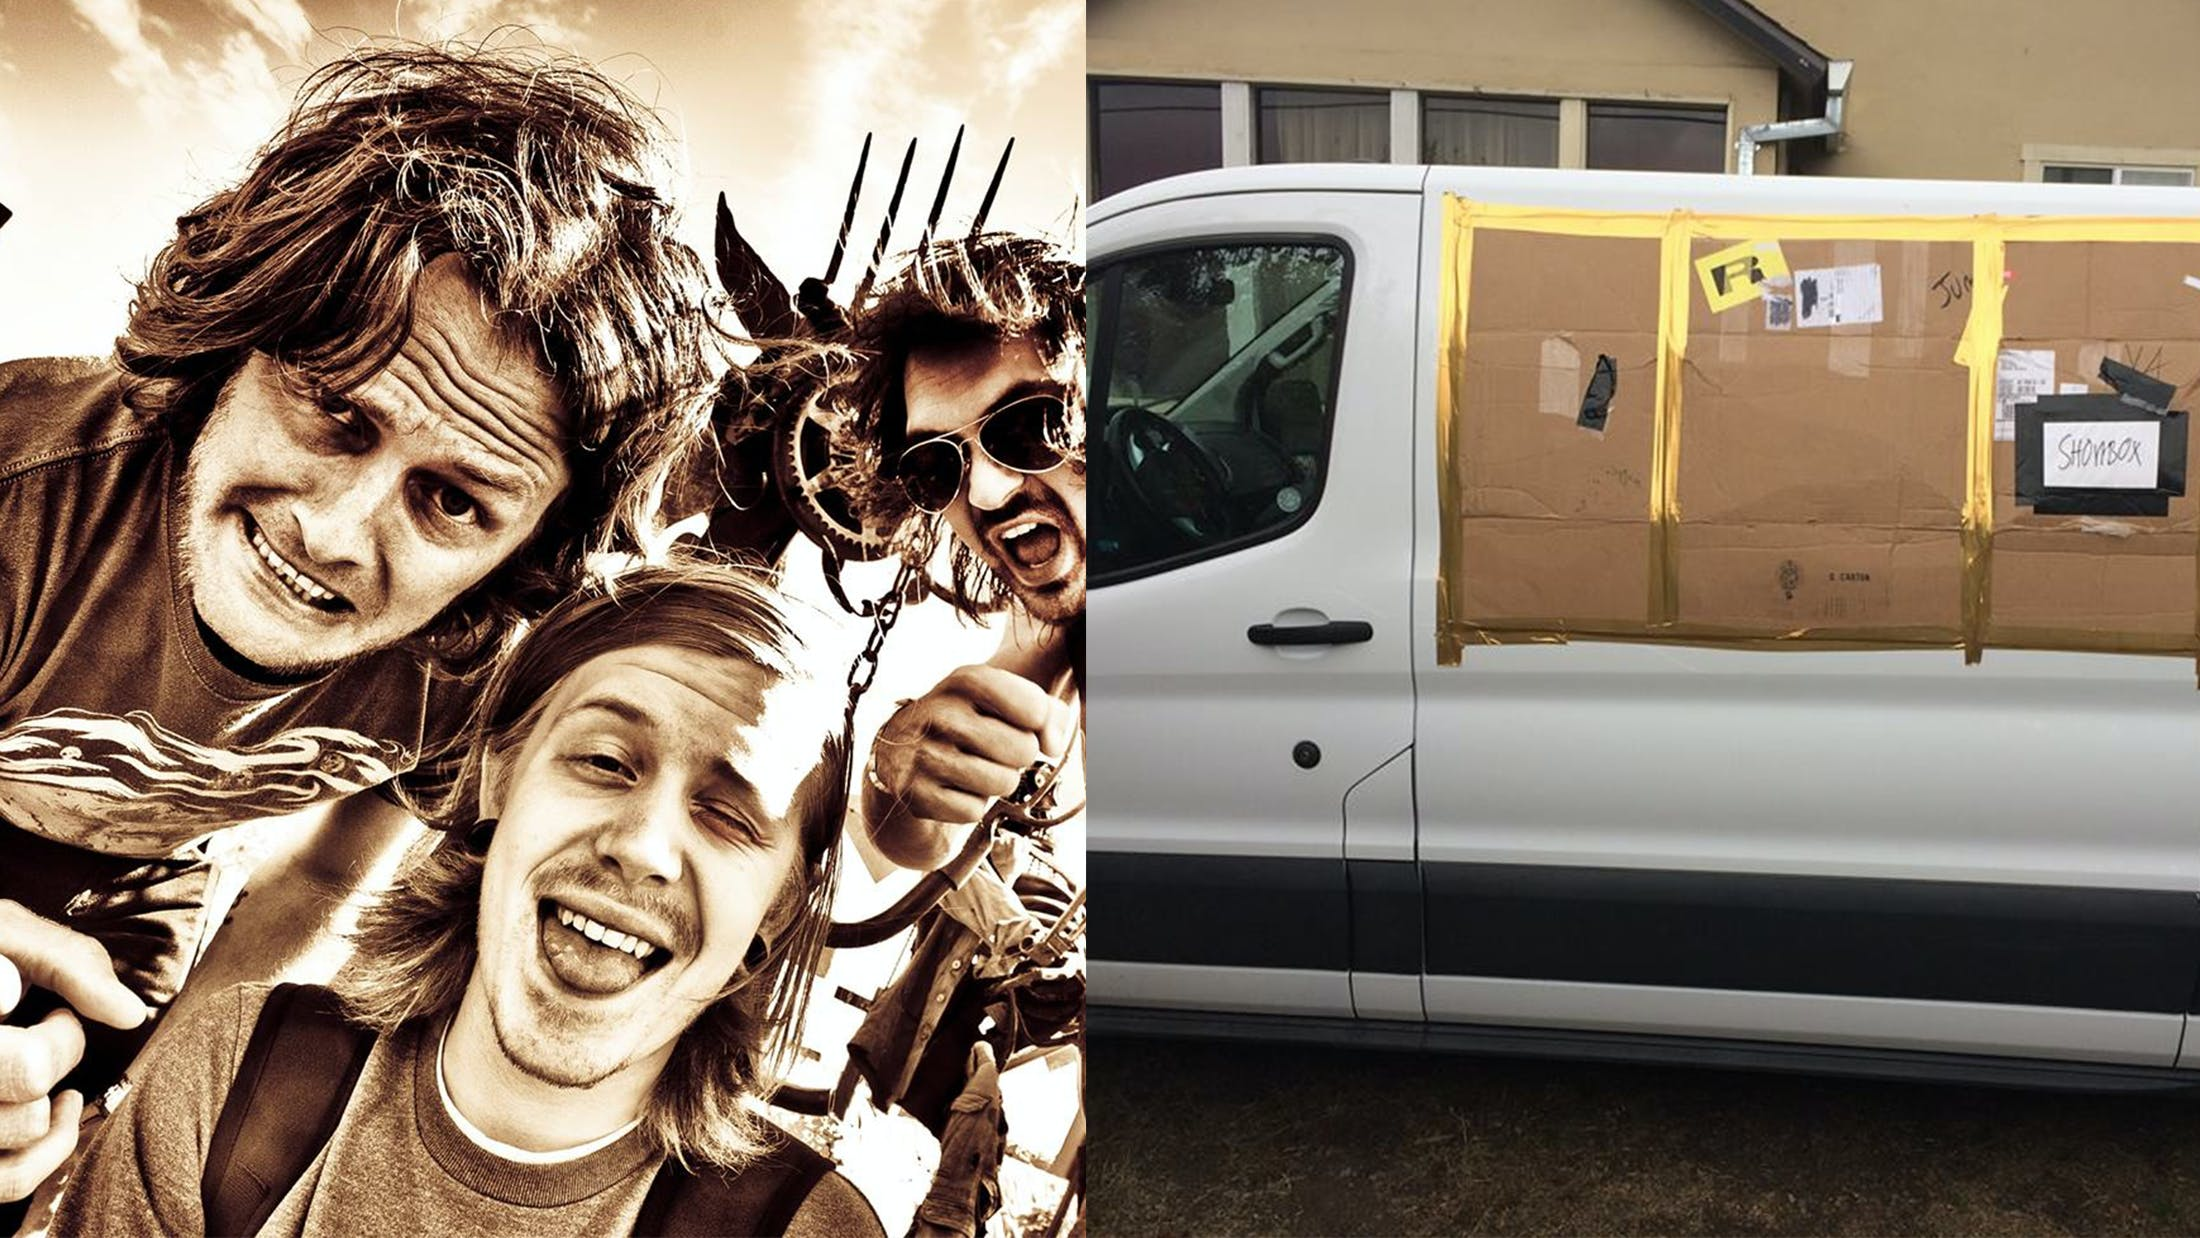 Swedish Band Truckfighters Robbed In San Francisco